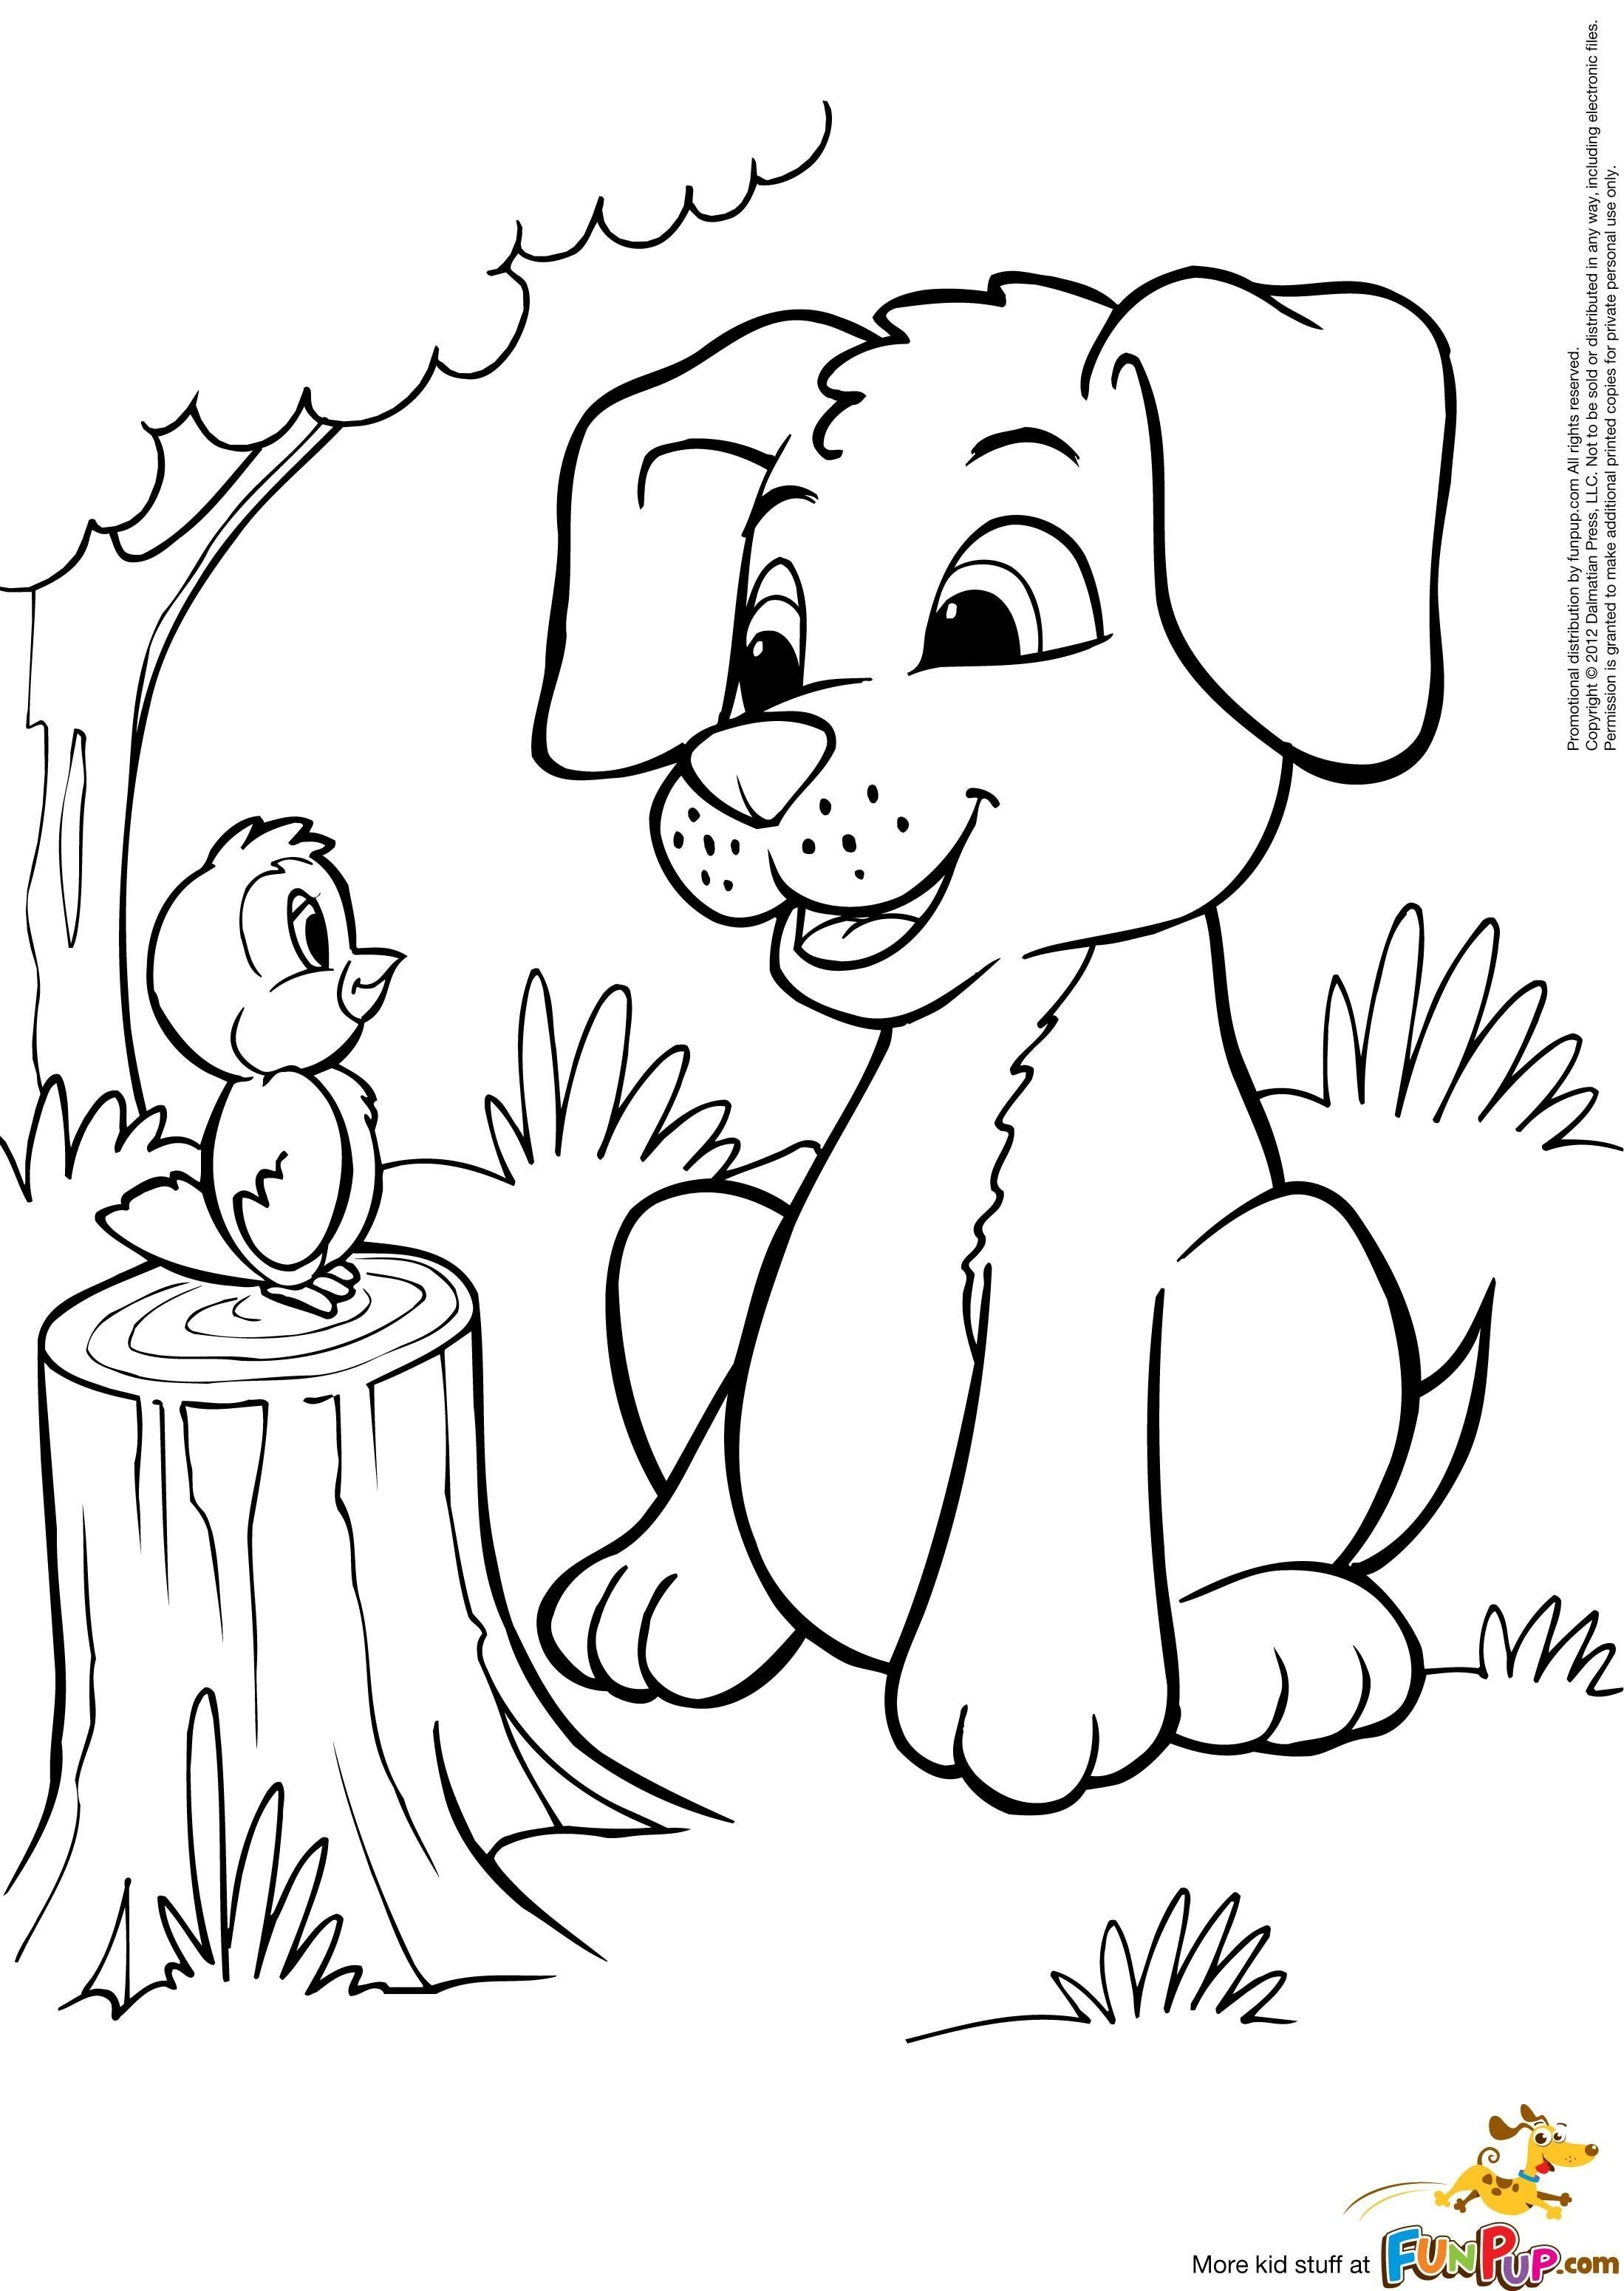 2198x3101 Expert Puppy Dog Pals Coloring Pages Printable